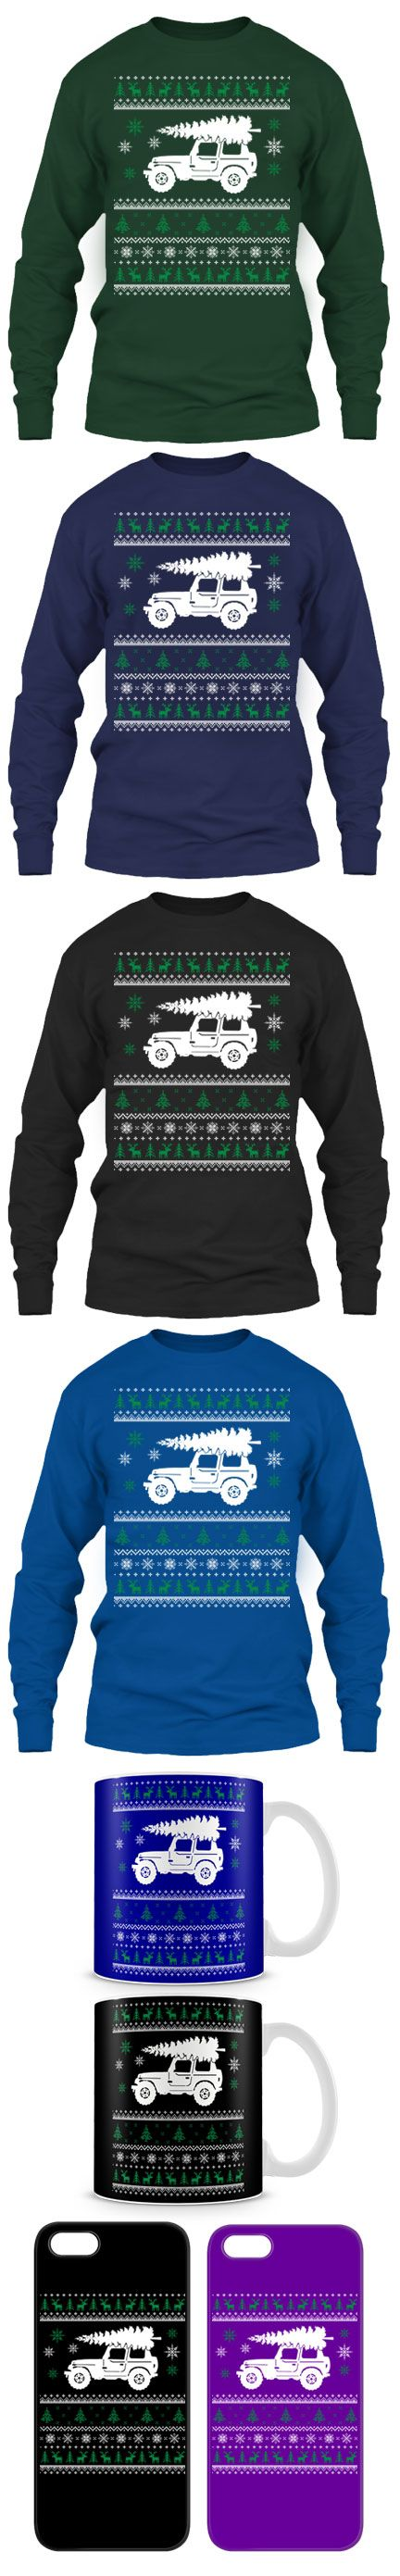 Love Jeeps? Then Click The Image To Buy It Now or Tag Someone You Want To Buy This For.